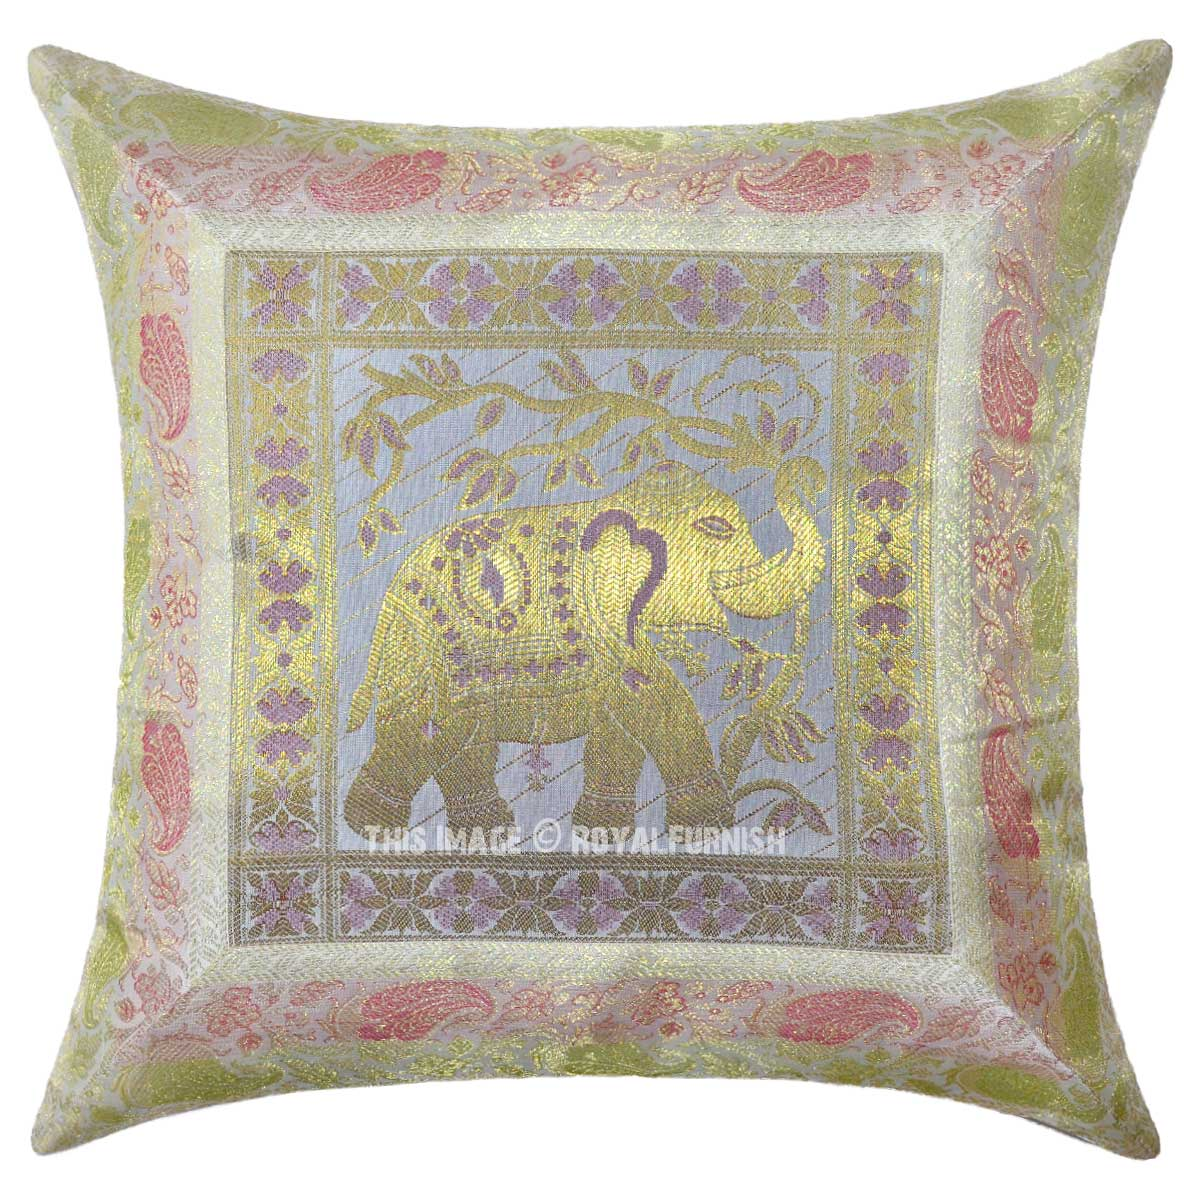 white multi decorative elephant silk throw pillow cover 16x16 inch. Black Bedroom Furniture Sets. Home Design Ideas